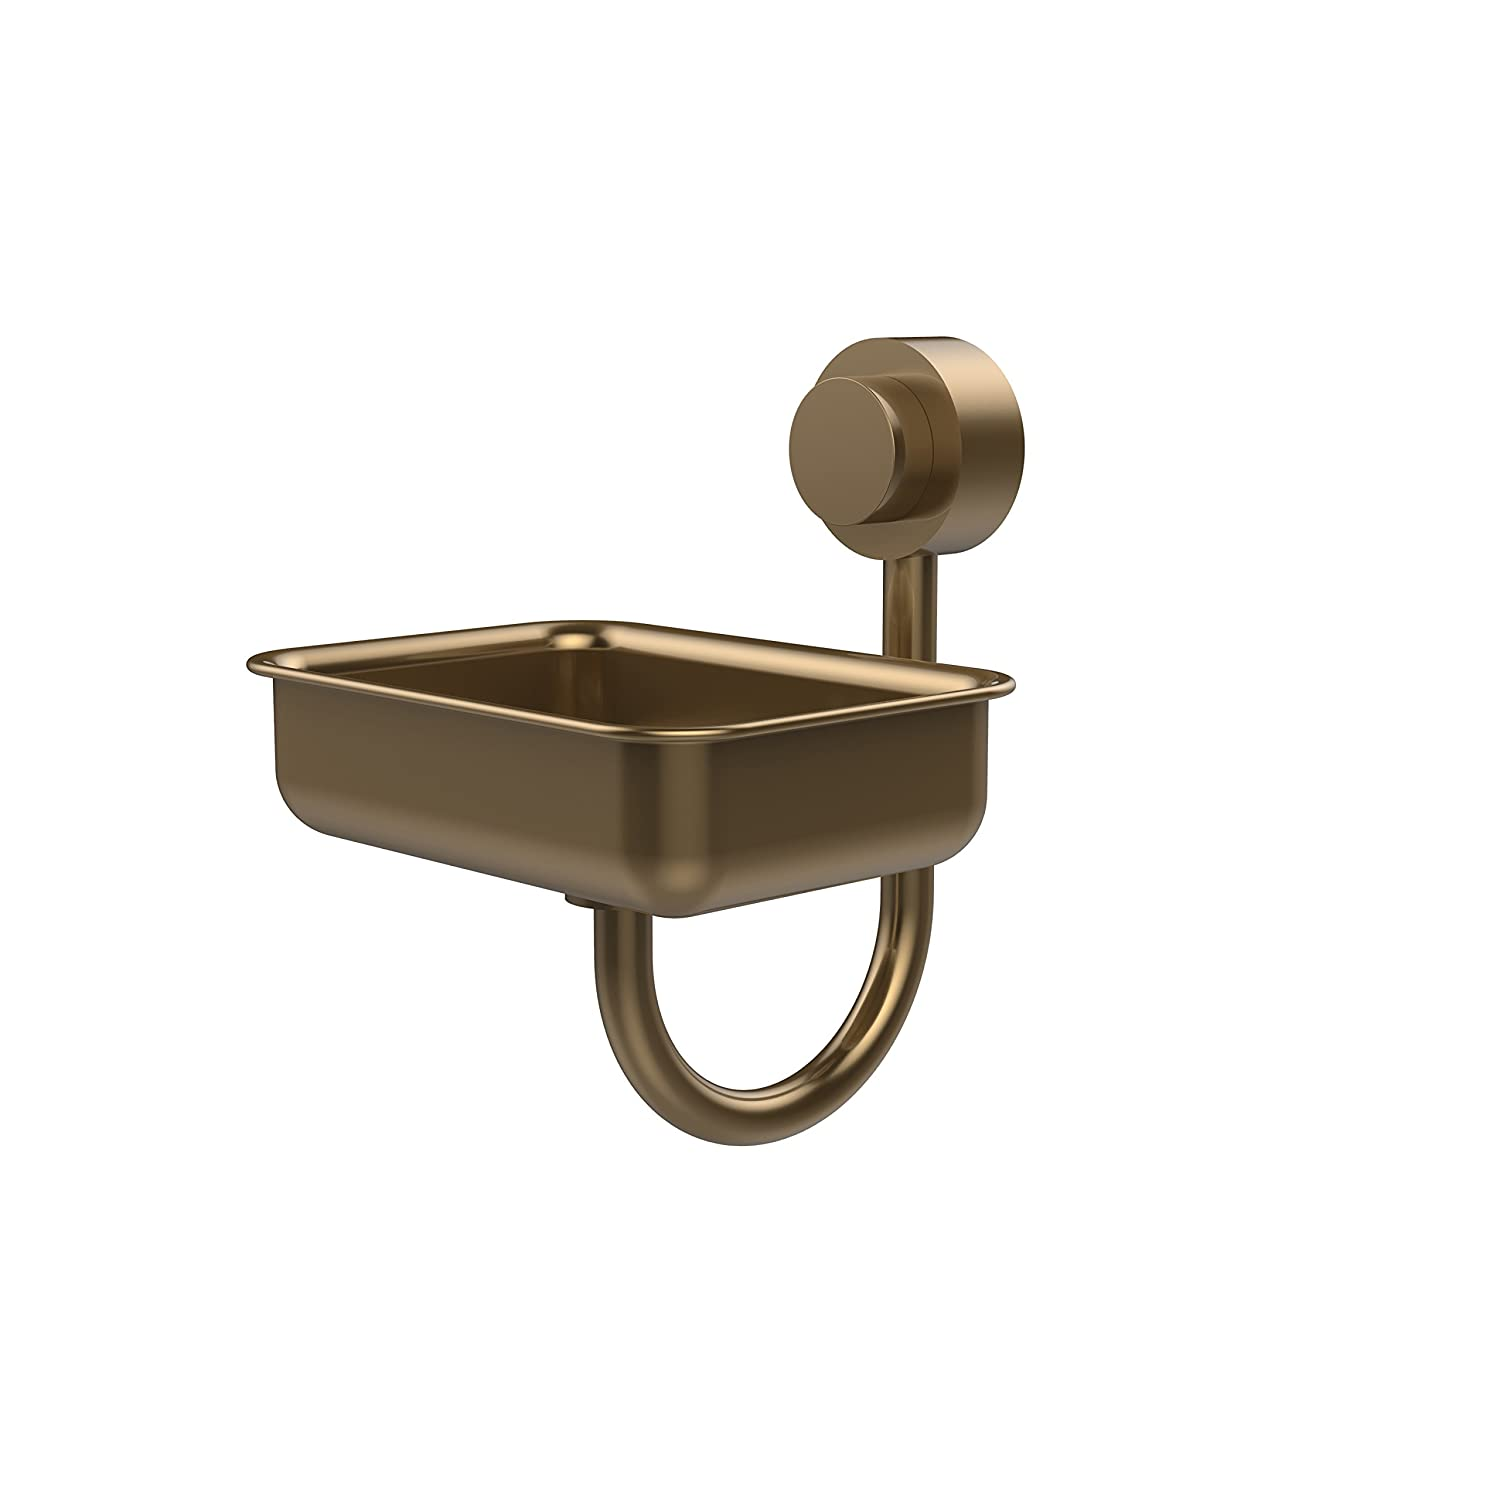 Allied Brass 432-BBR Venus Collection Wall Mounted Soap Dish Brushed Bronze